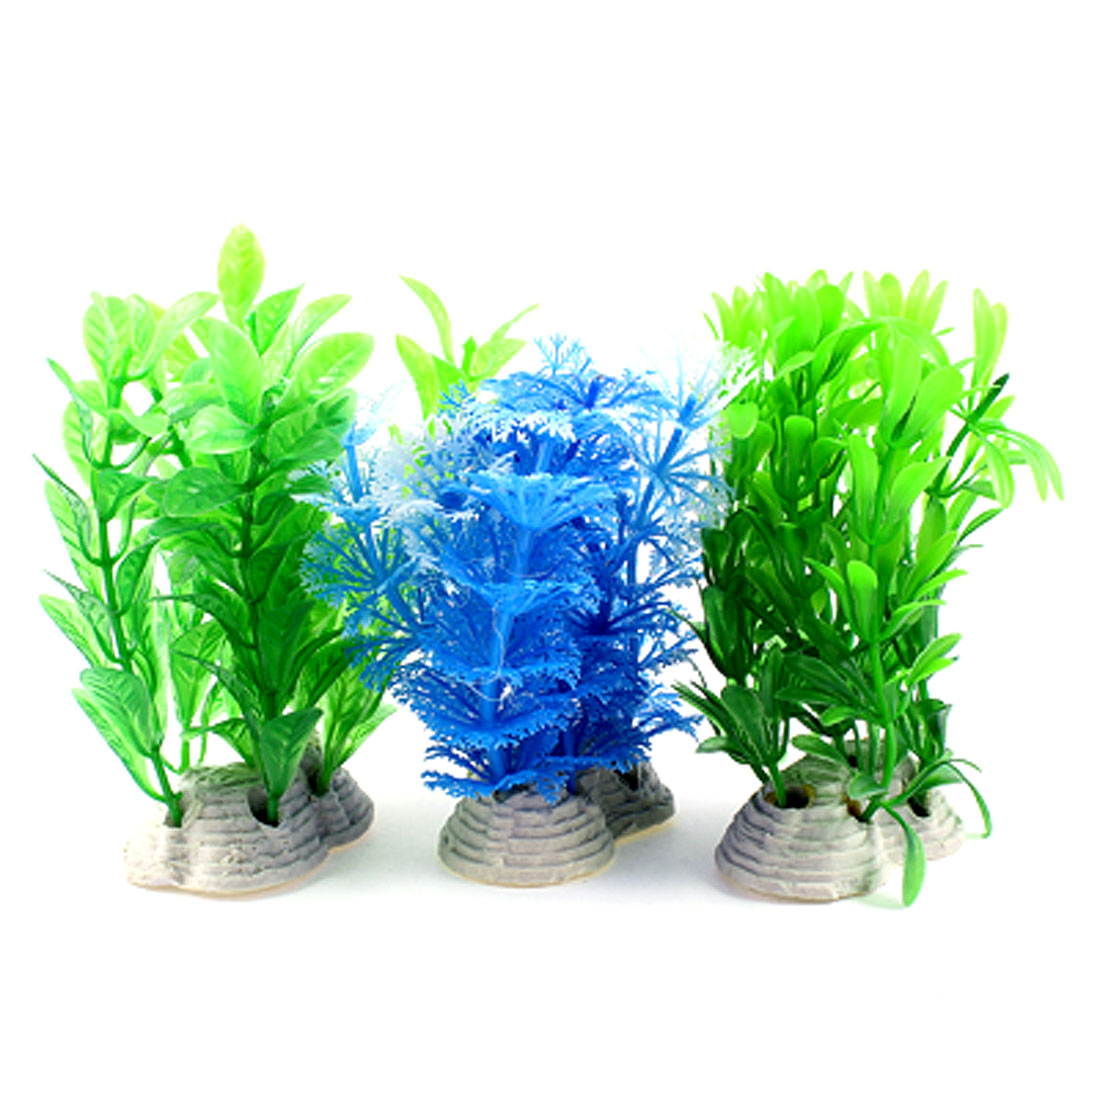 3 Pcs Aquarium Ornament Emulational Underwater Plants Grasses Blue Green